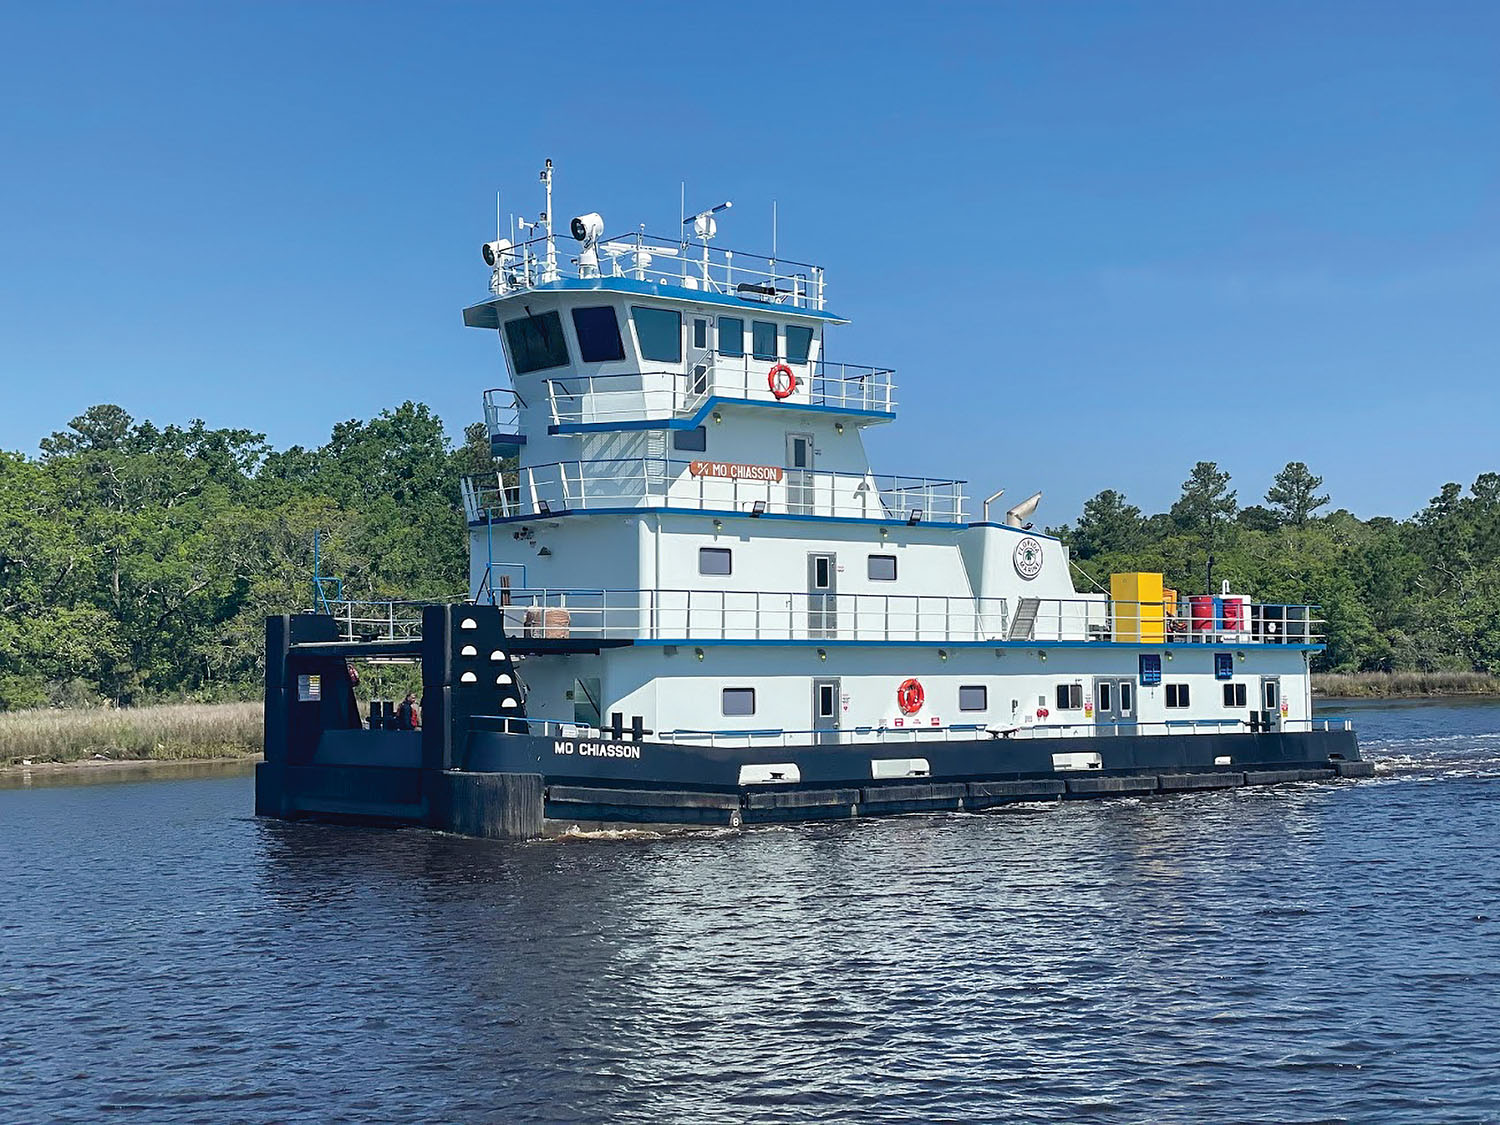 FMT Takes Delivery Of Mv. Mo Chiasson